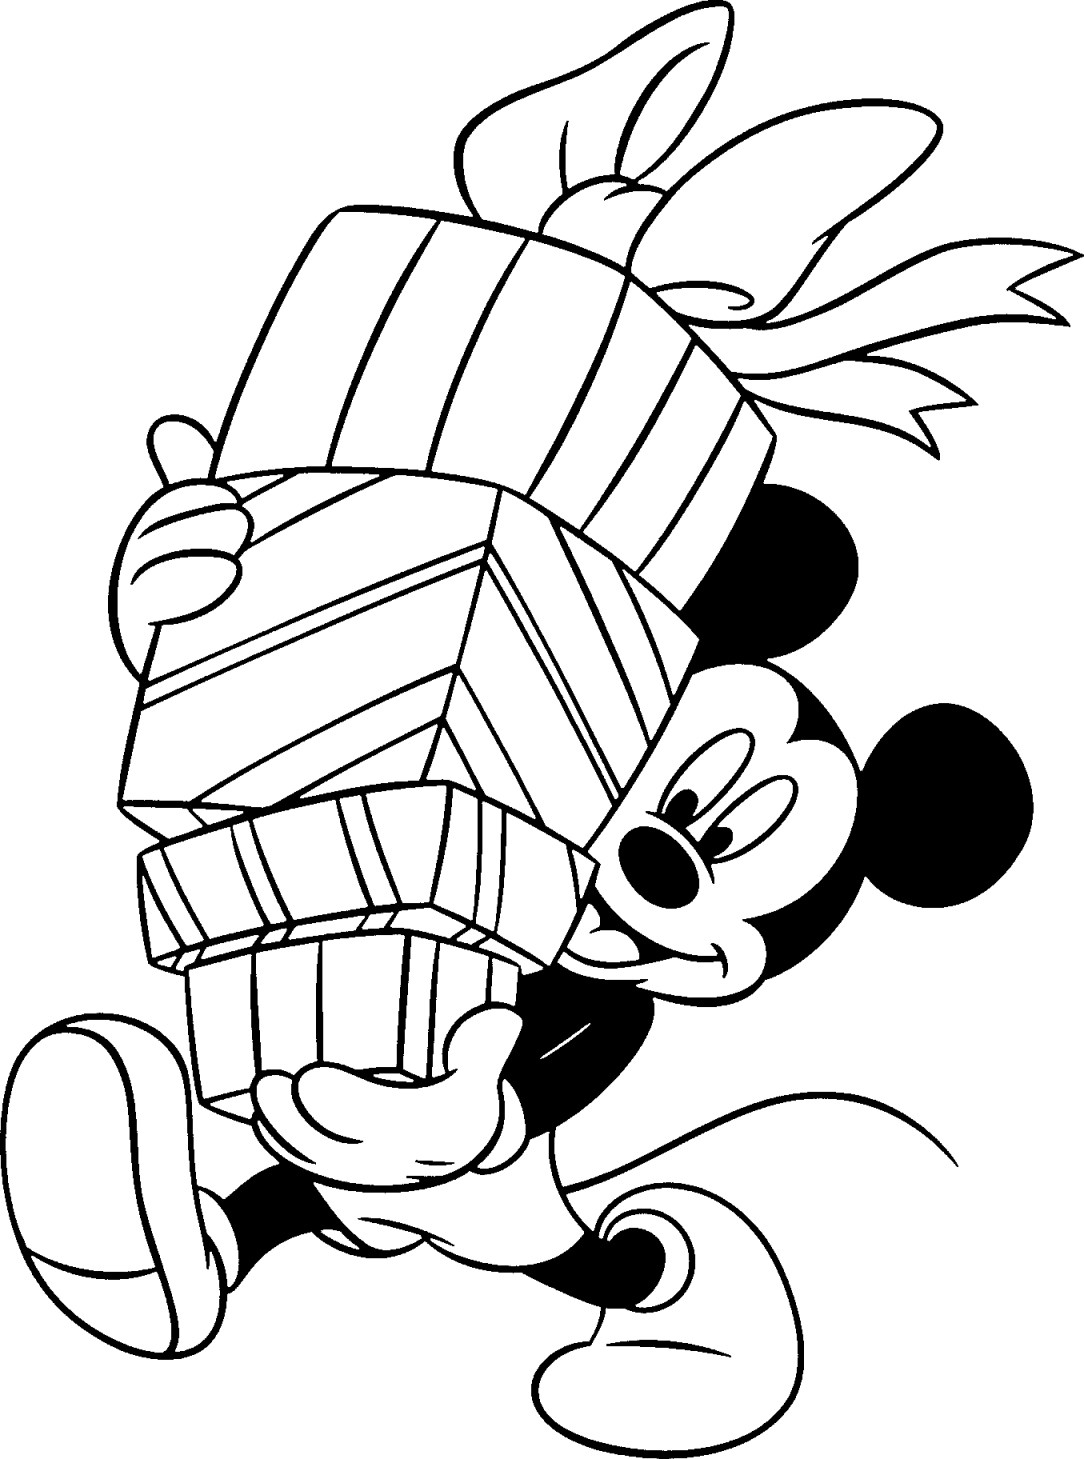 Christmas Coloring Pages With Free Disney Printable For Kids Honey Lime